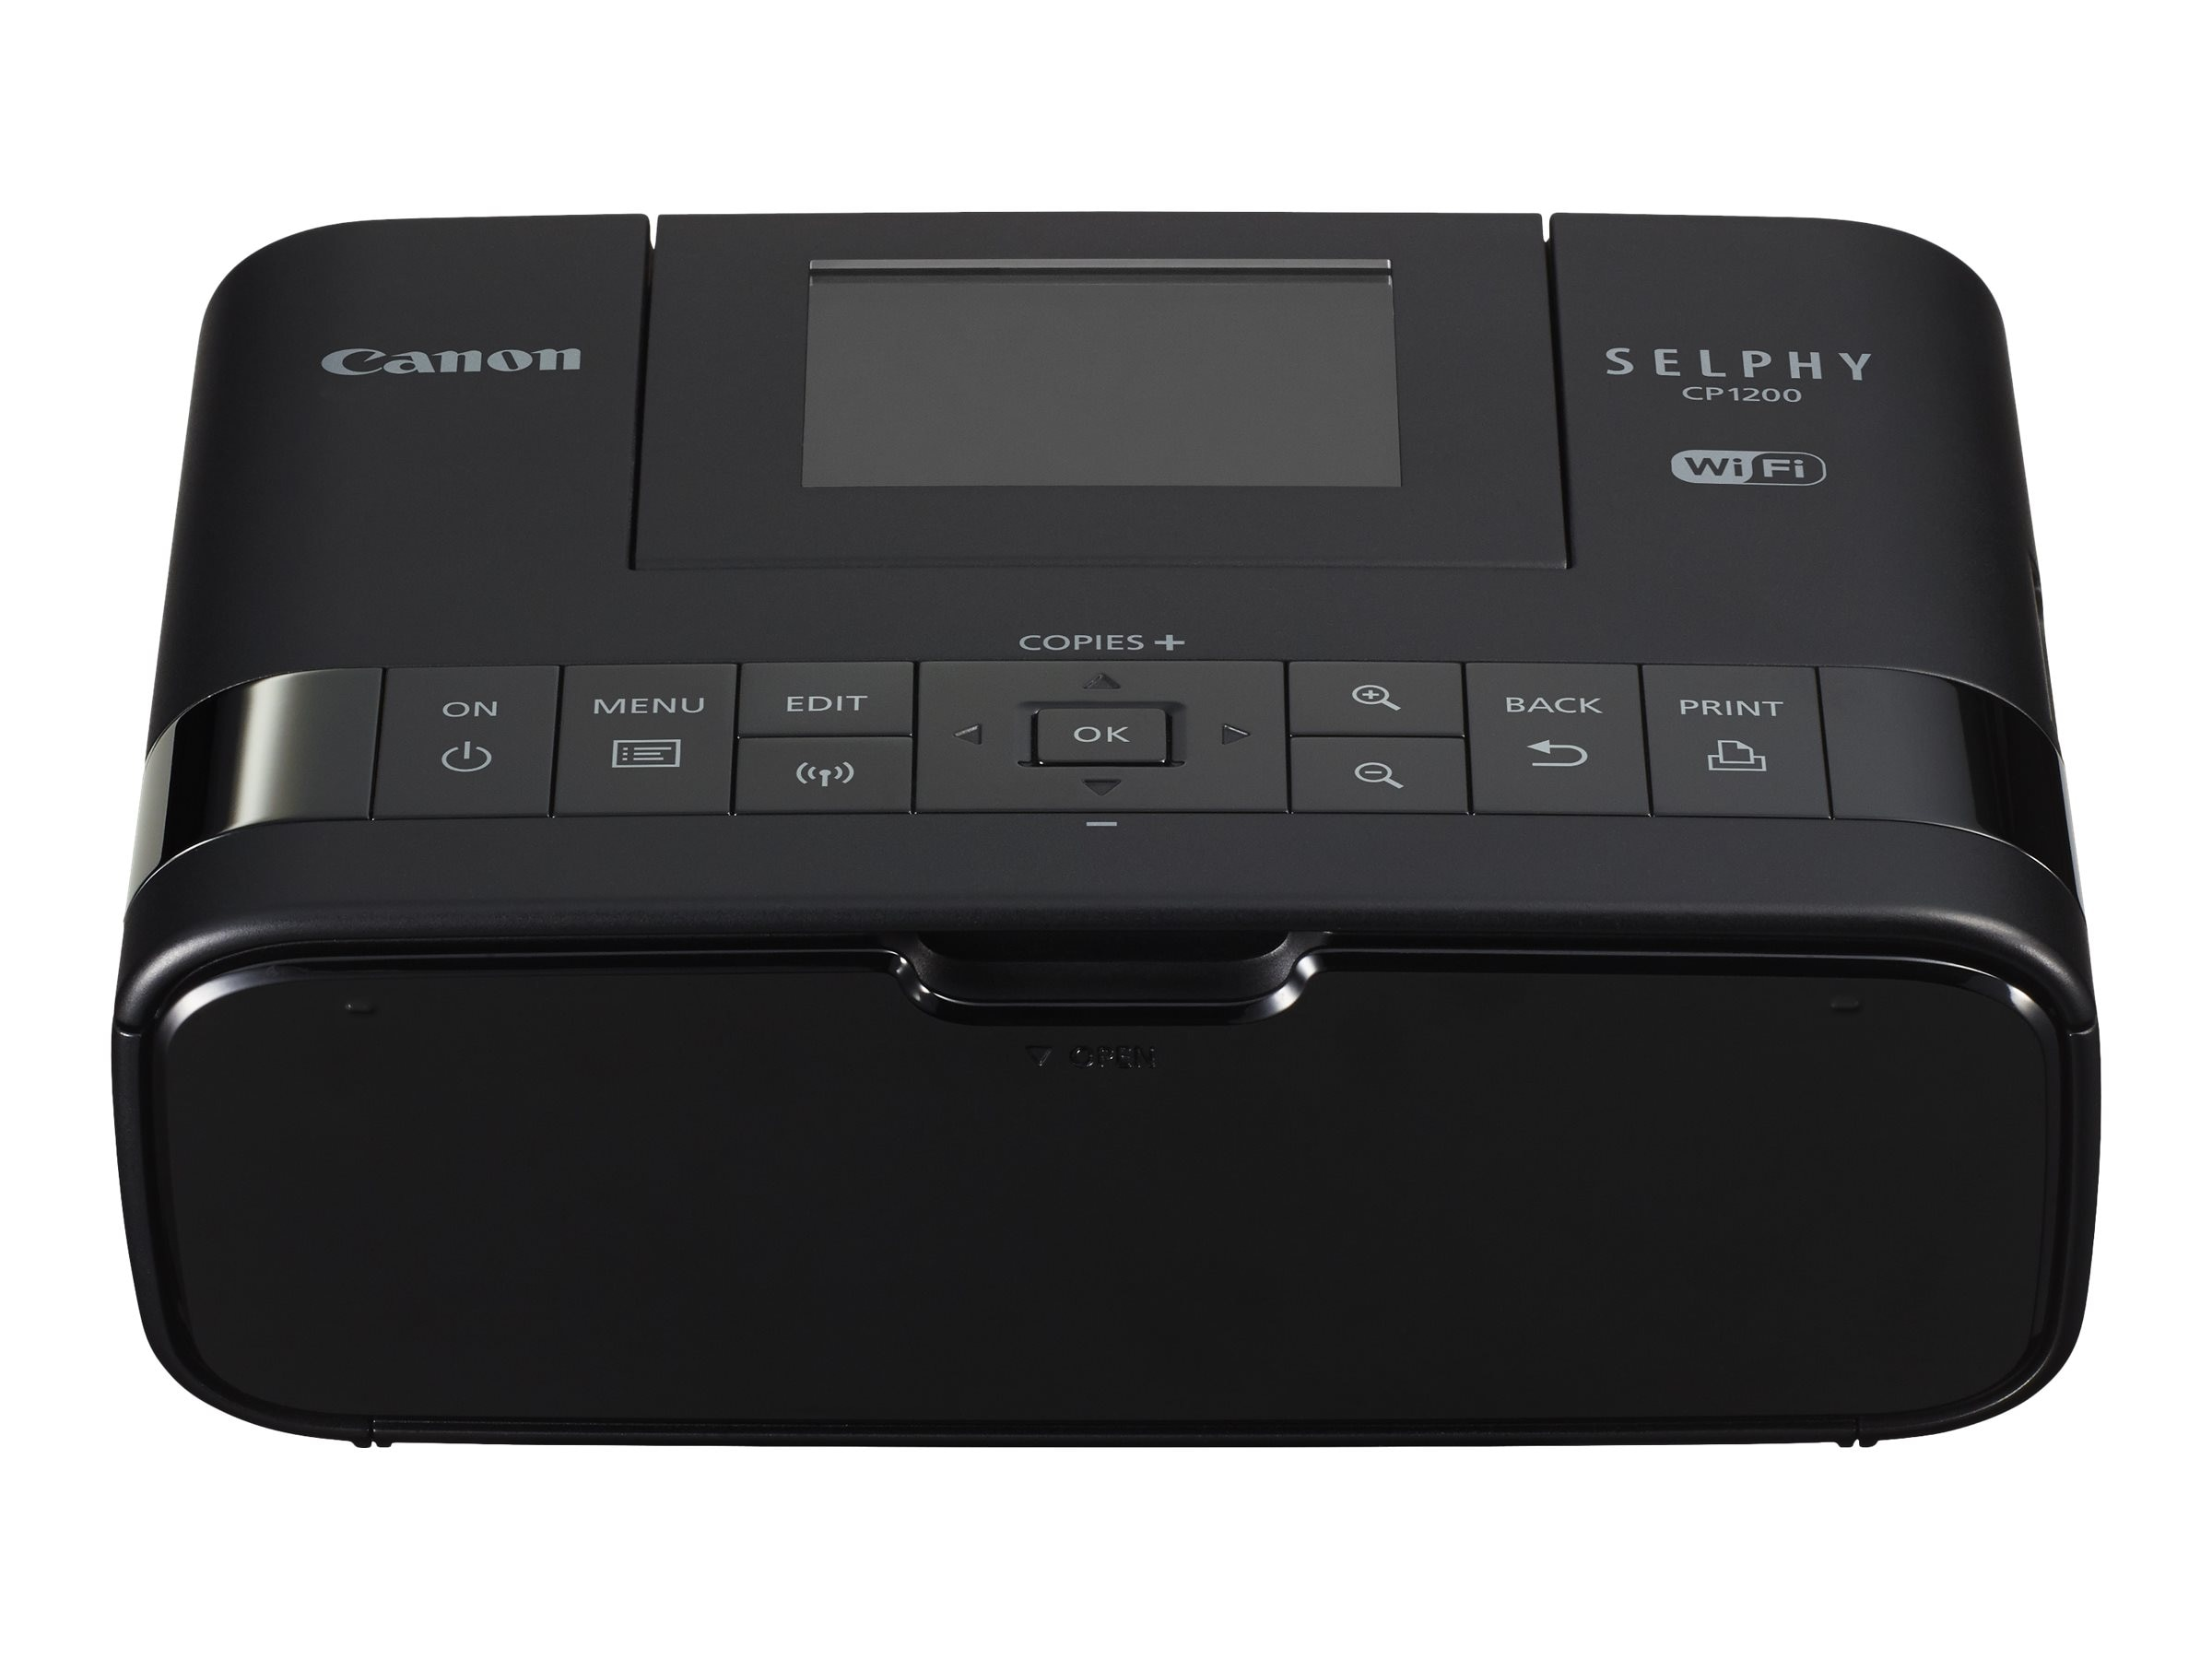 Canon SELPHY CP1200 Compact Photo Printer, 0599C001